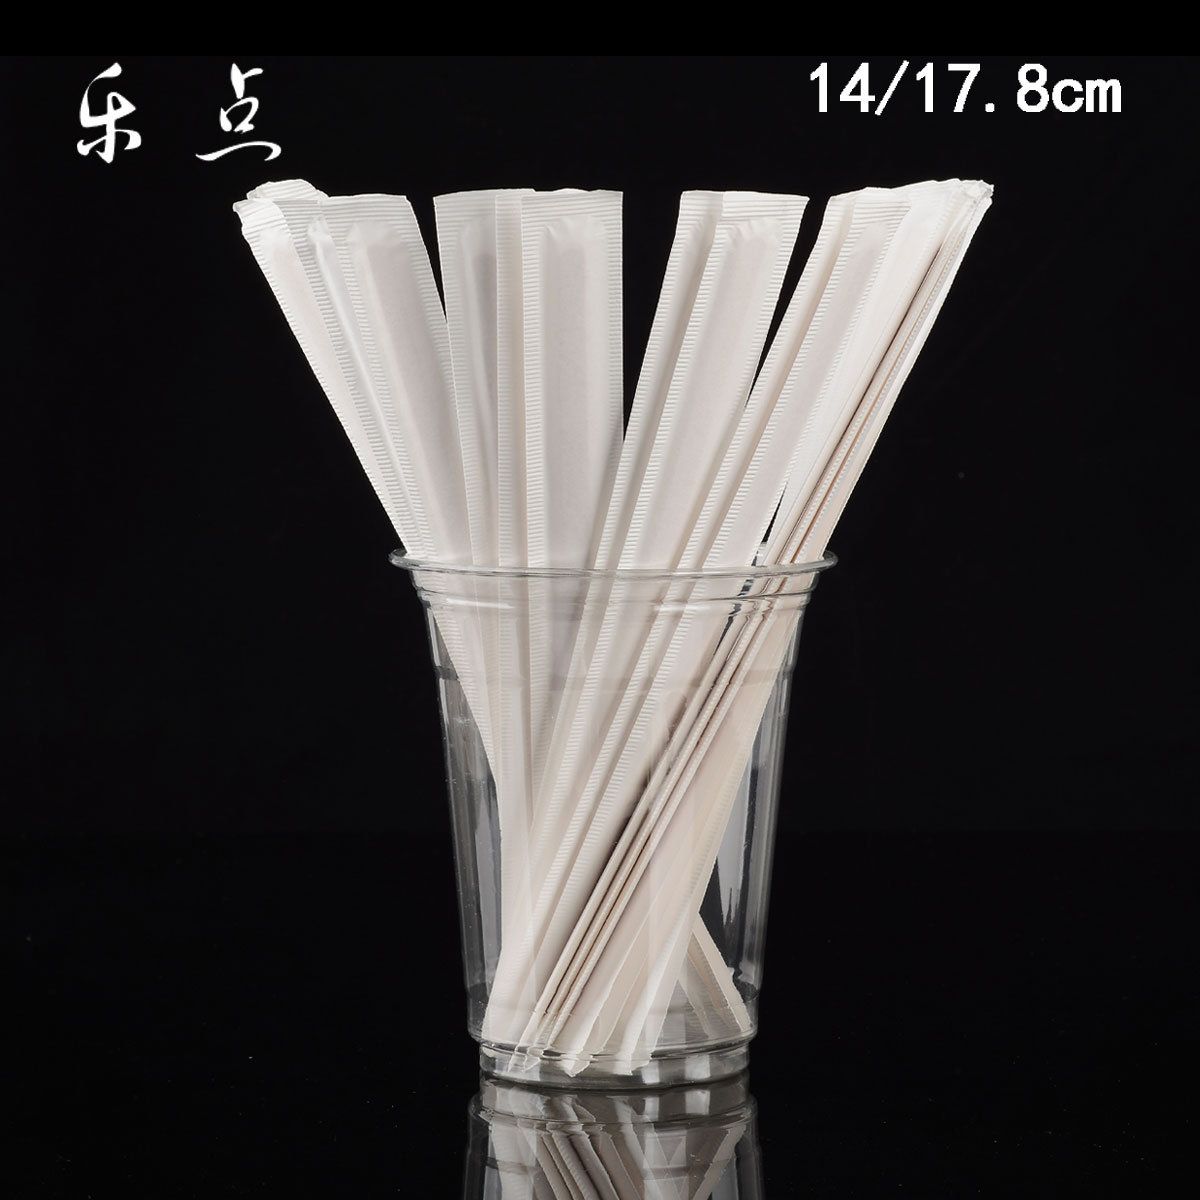 Le point disposable wooden coffee stirrer stirring rod wooden coffee stir sticks 14/17. 8 CM 100